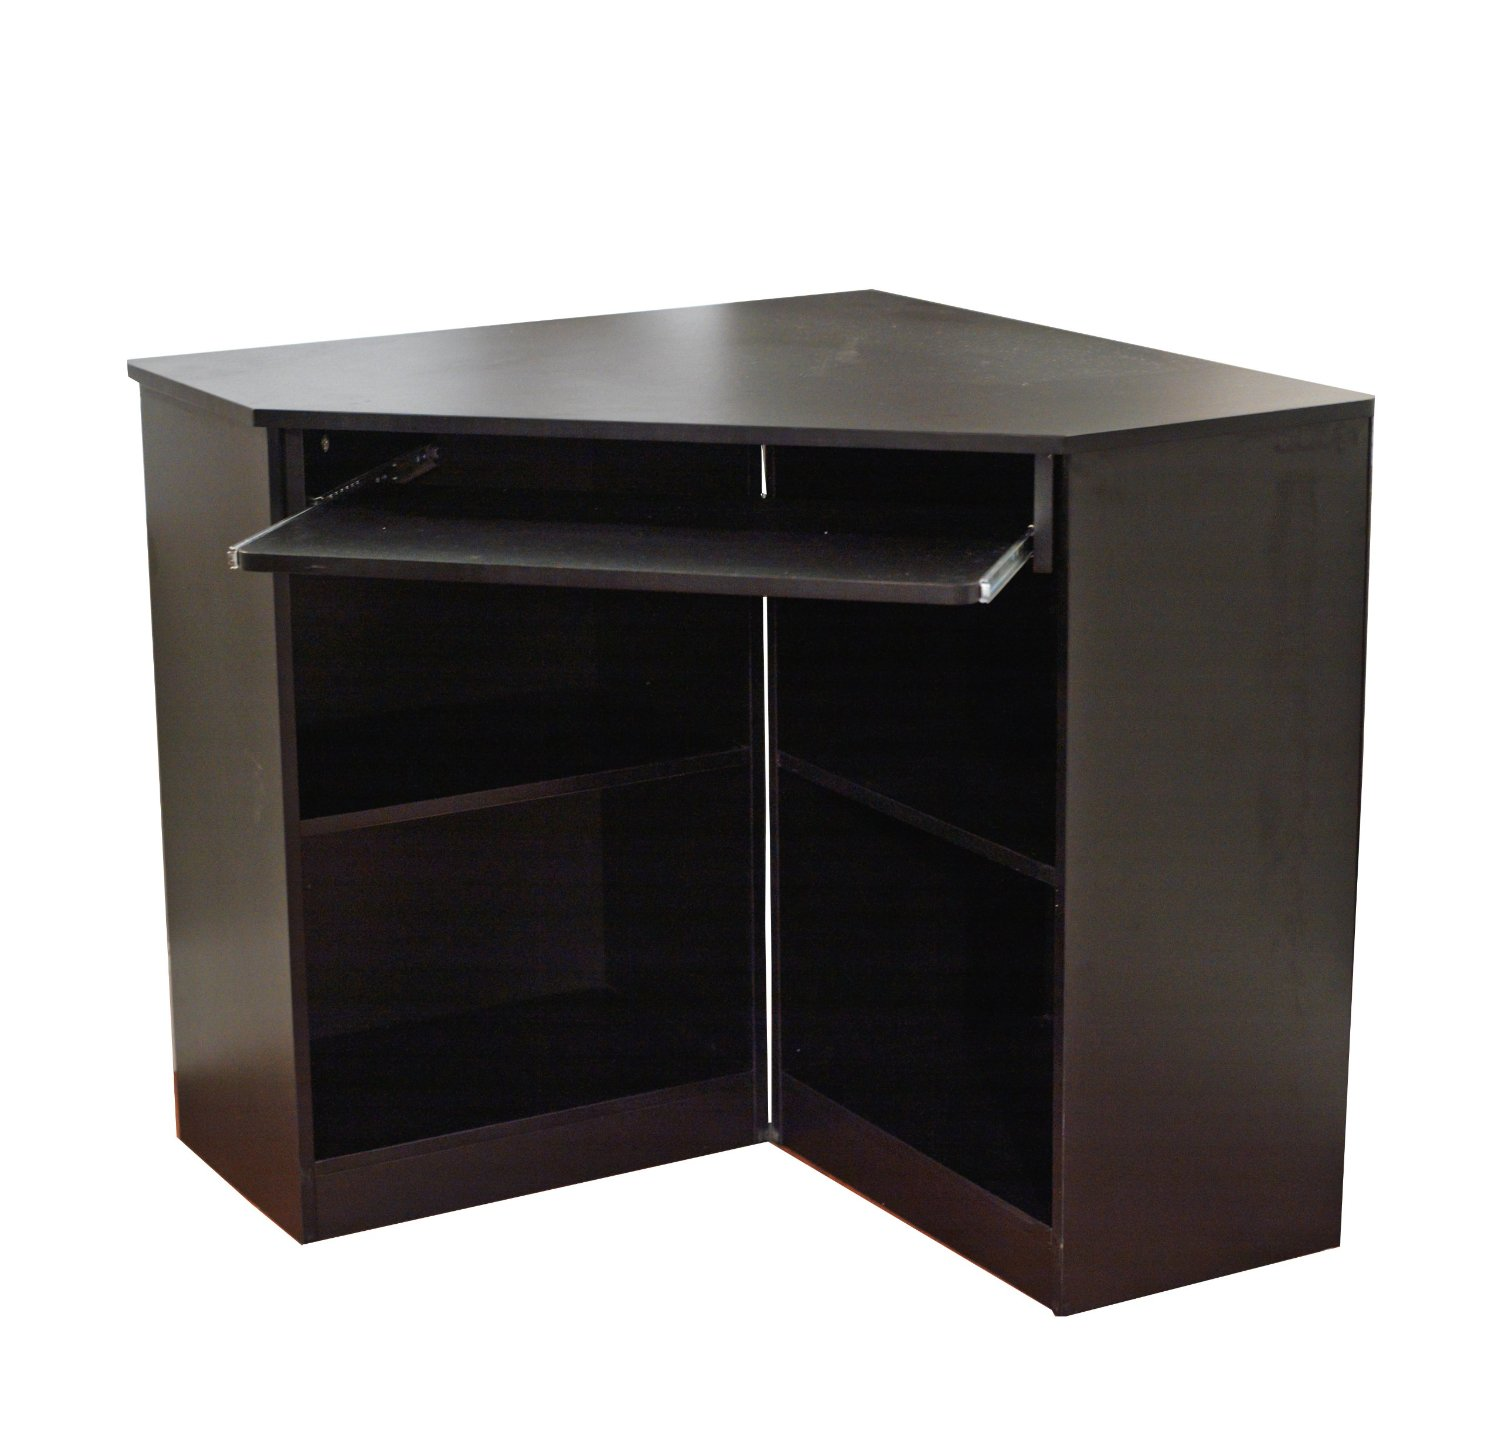 Target Marketing Systems Oxford Collection Modern Corner Computer Desk With 4 Shelves and Keyboard Space, Black